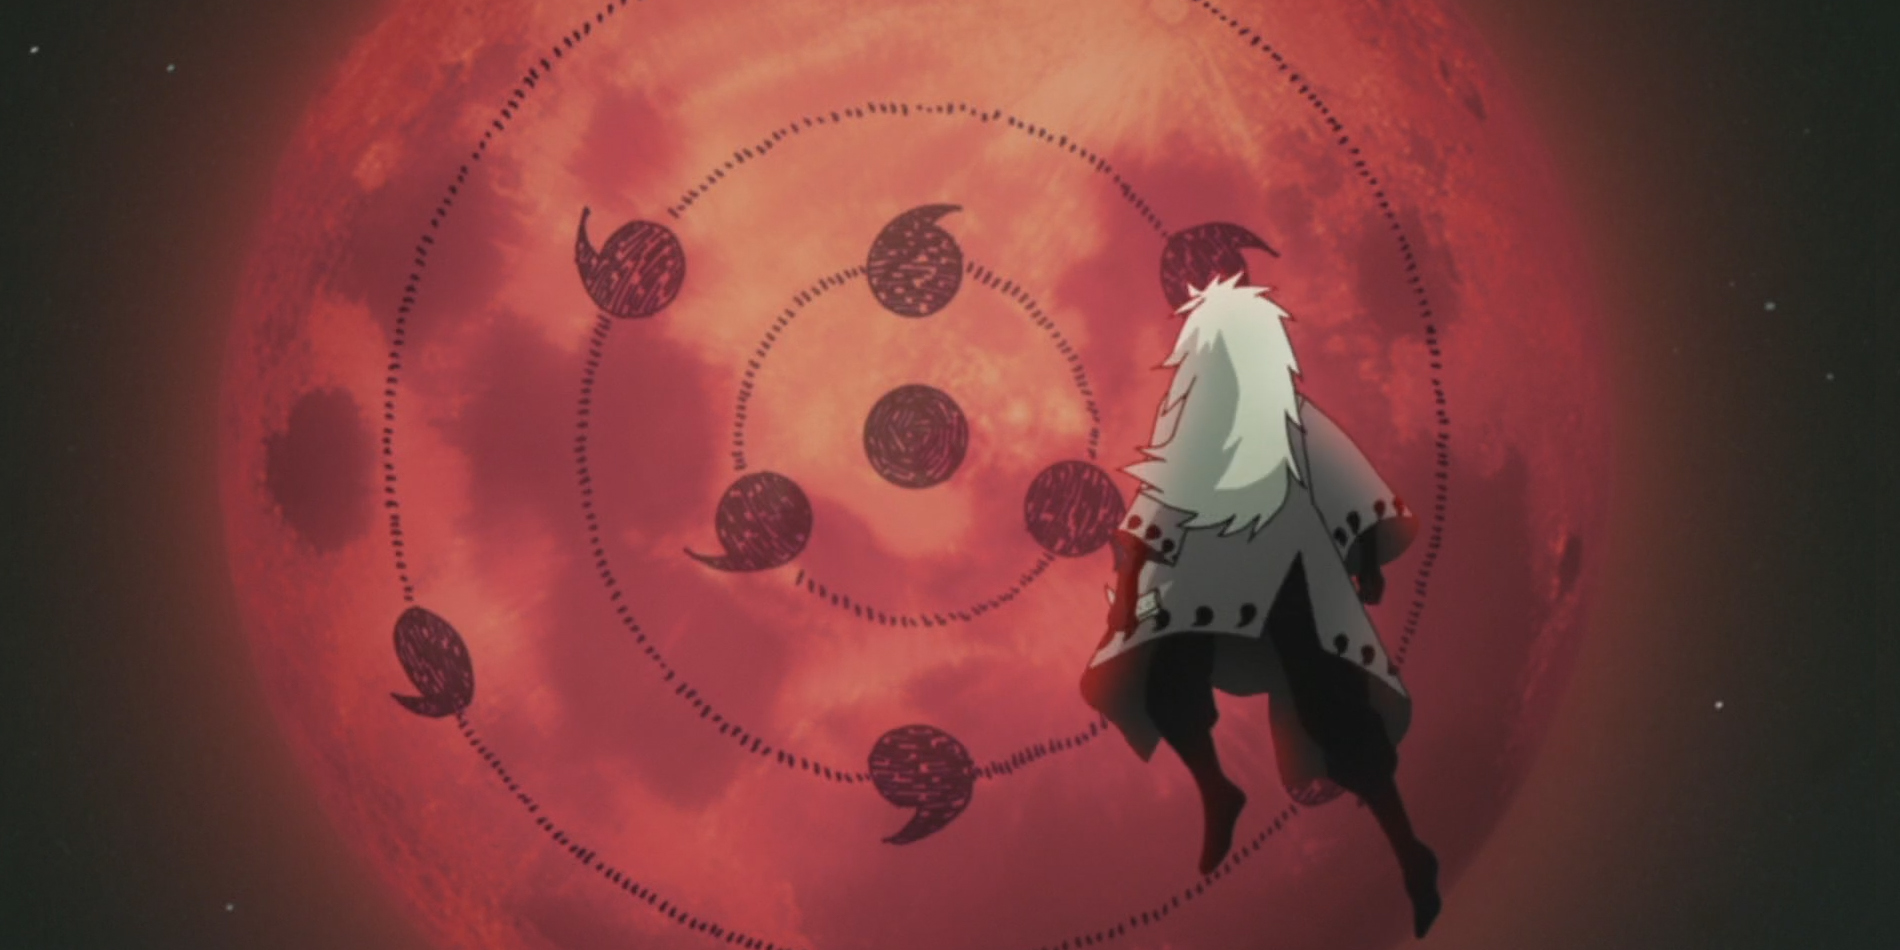 20 Fan Theories About Naruto's Villains So Crazy They Might